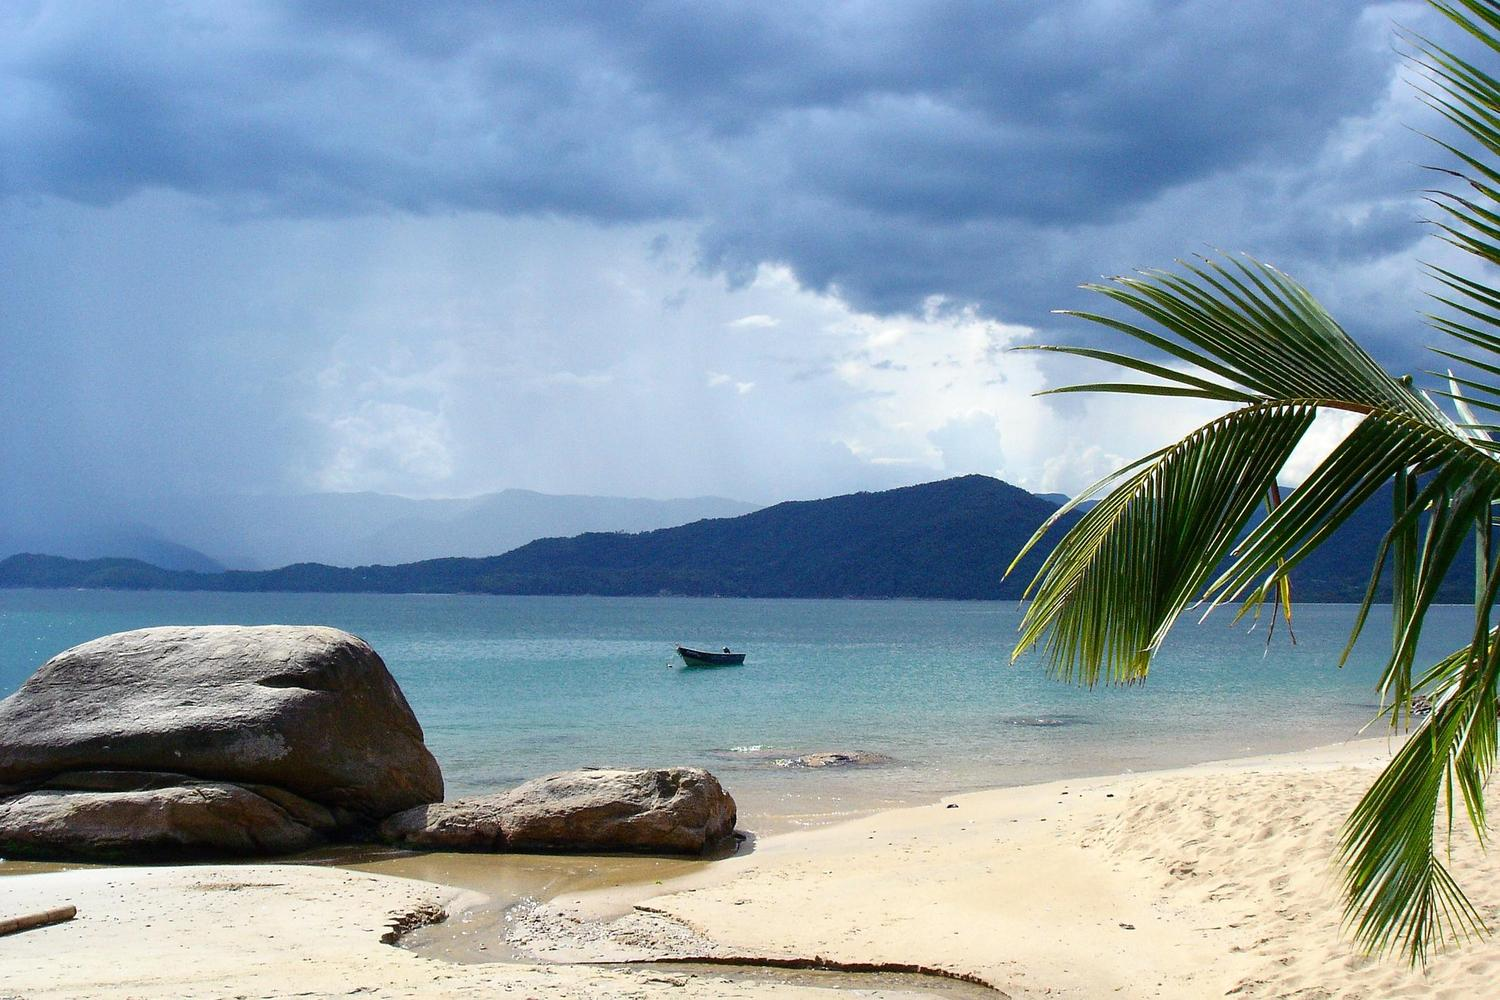 The peaceful beaches of Paraty bay in Brazil